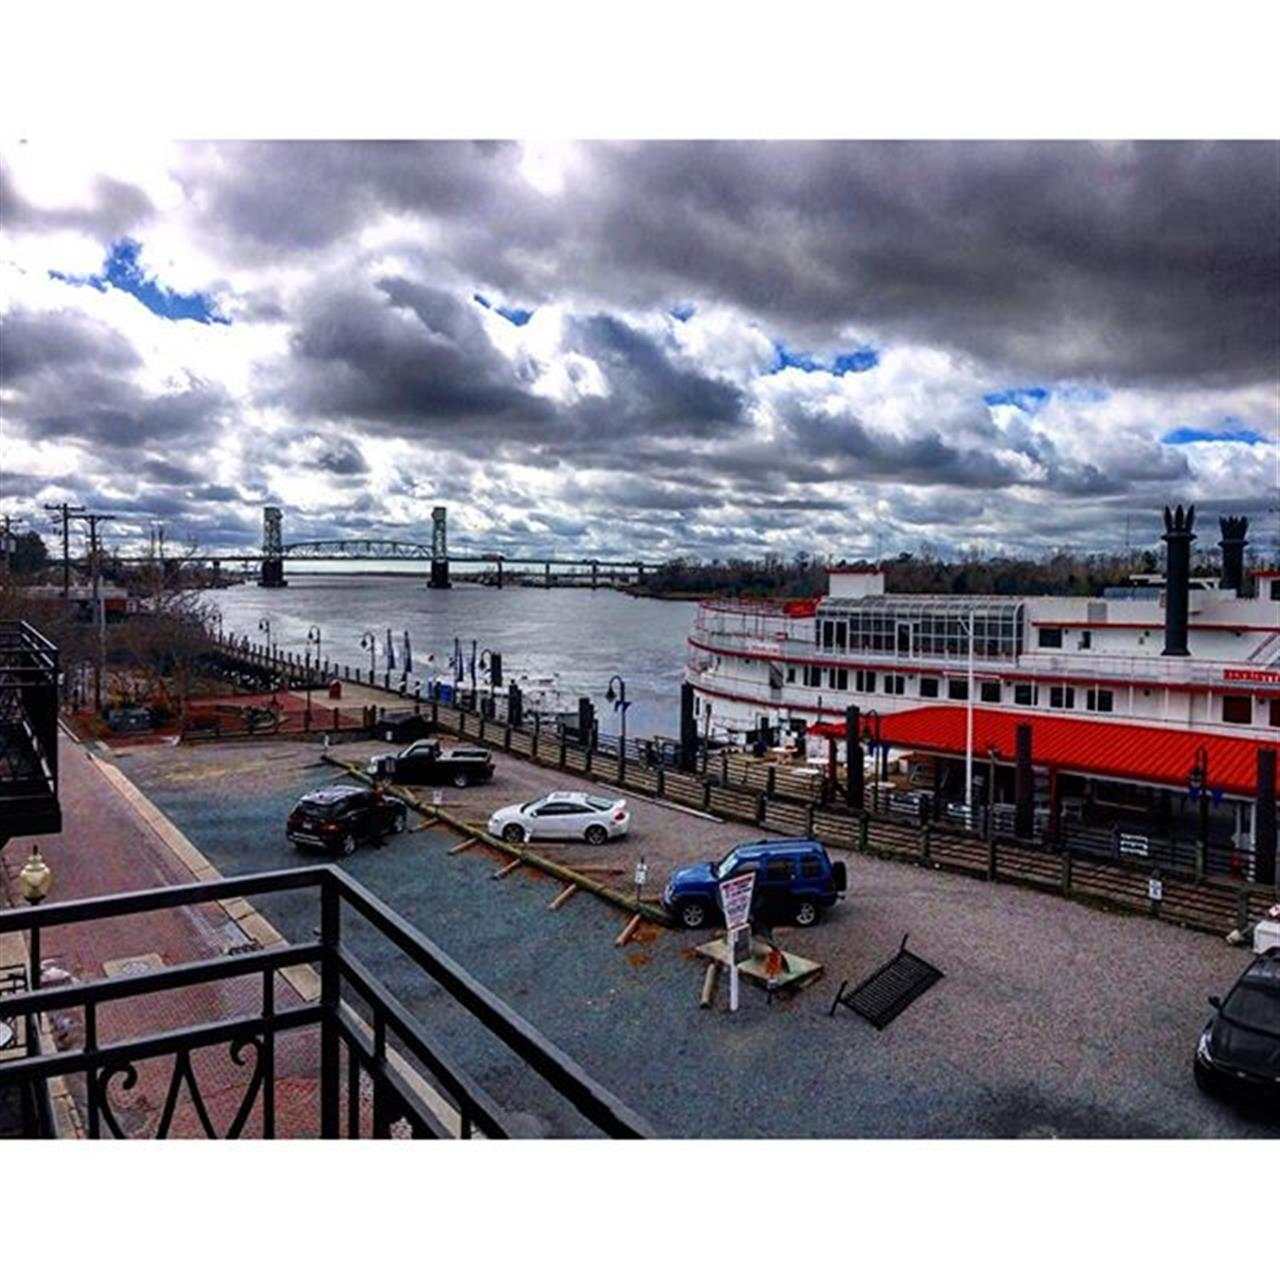 The views today were nothing short of amazing. ? #wilmington #downtownwilmington #ilm